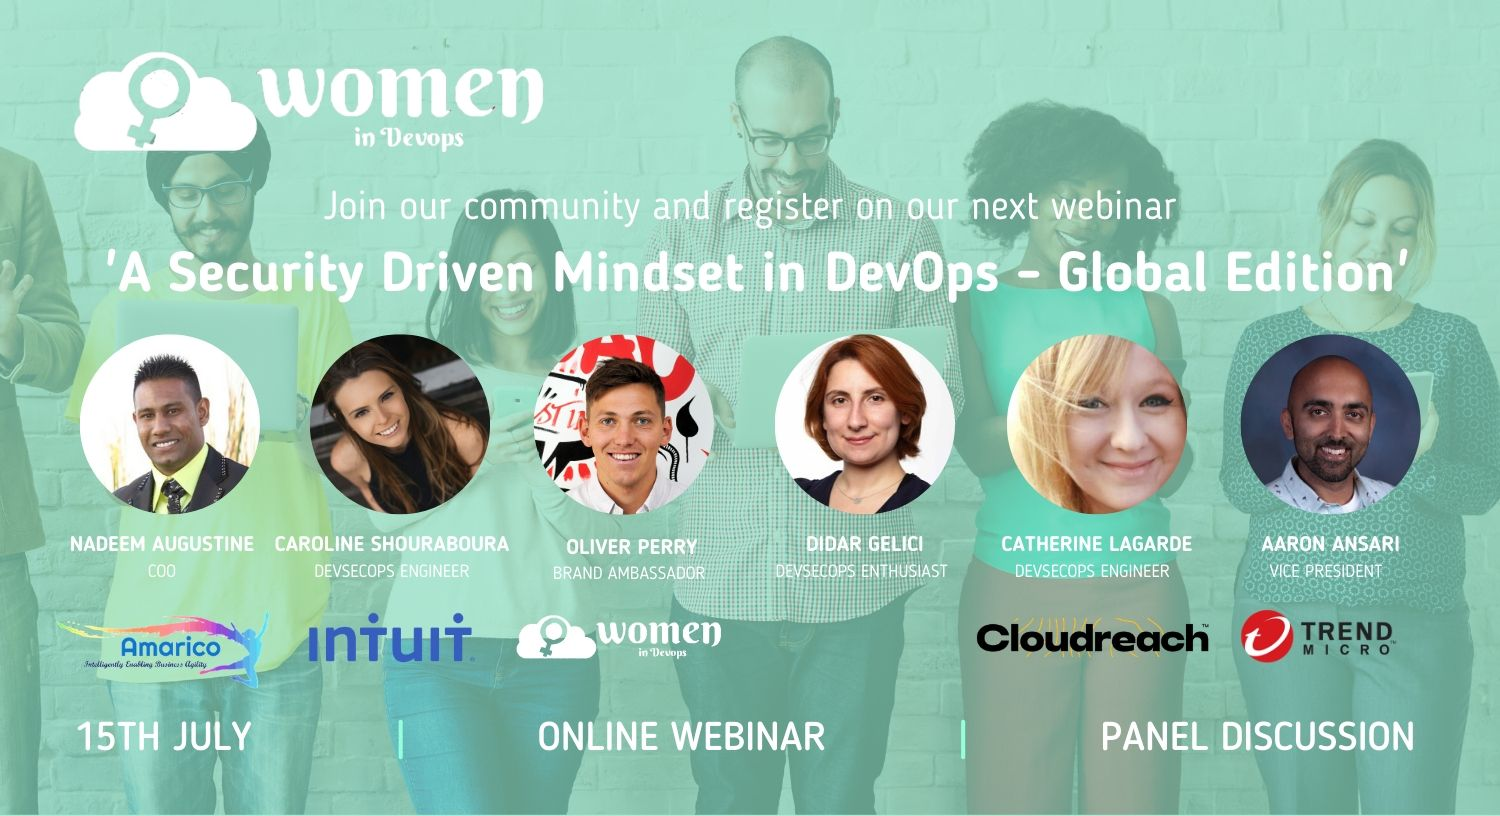 Webinar #4 - A Security Driven Mindset in DevOps - Global Addition